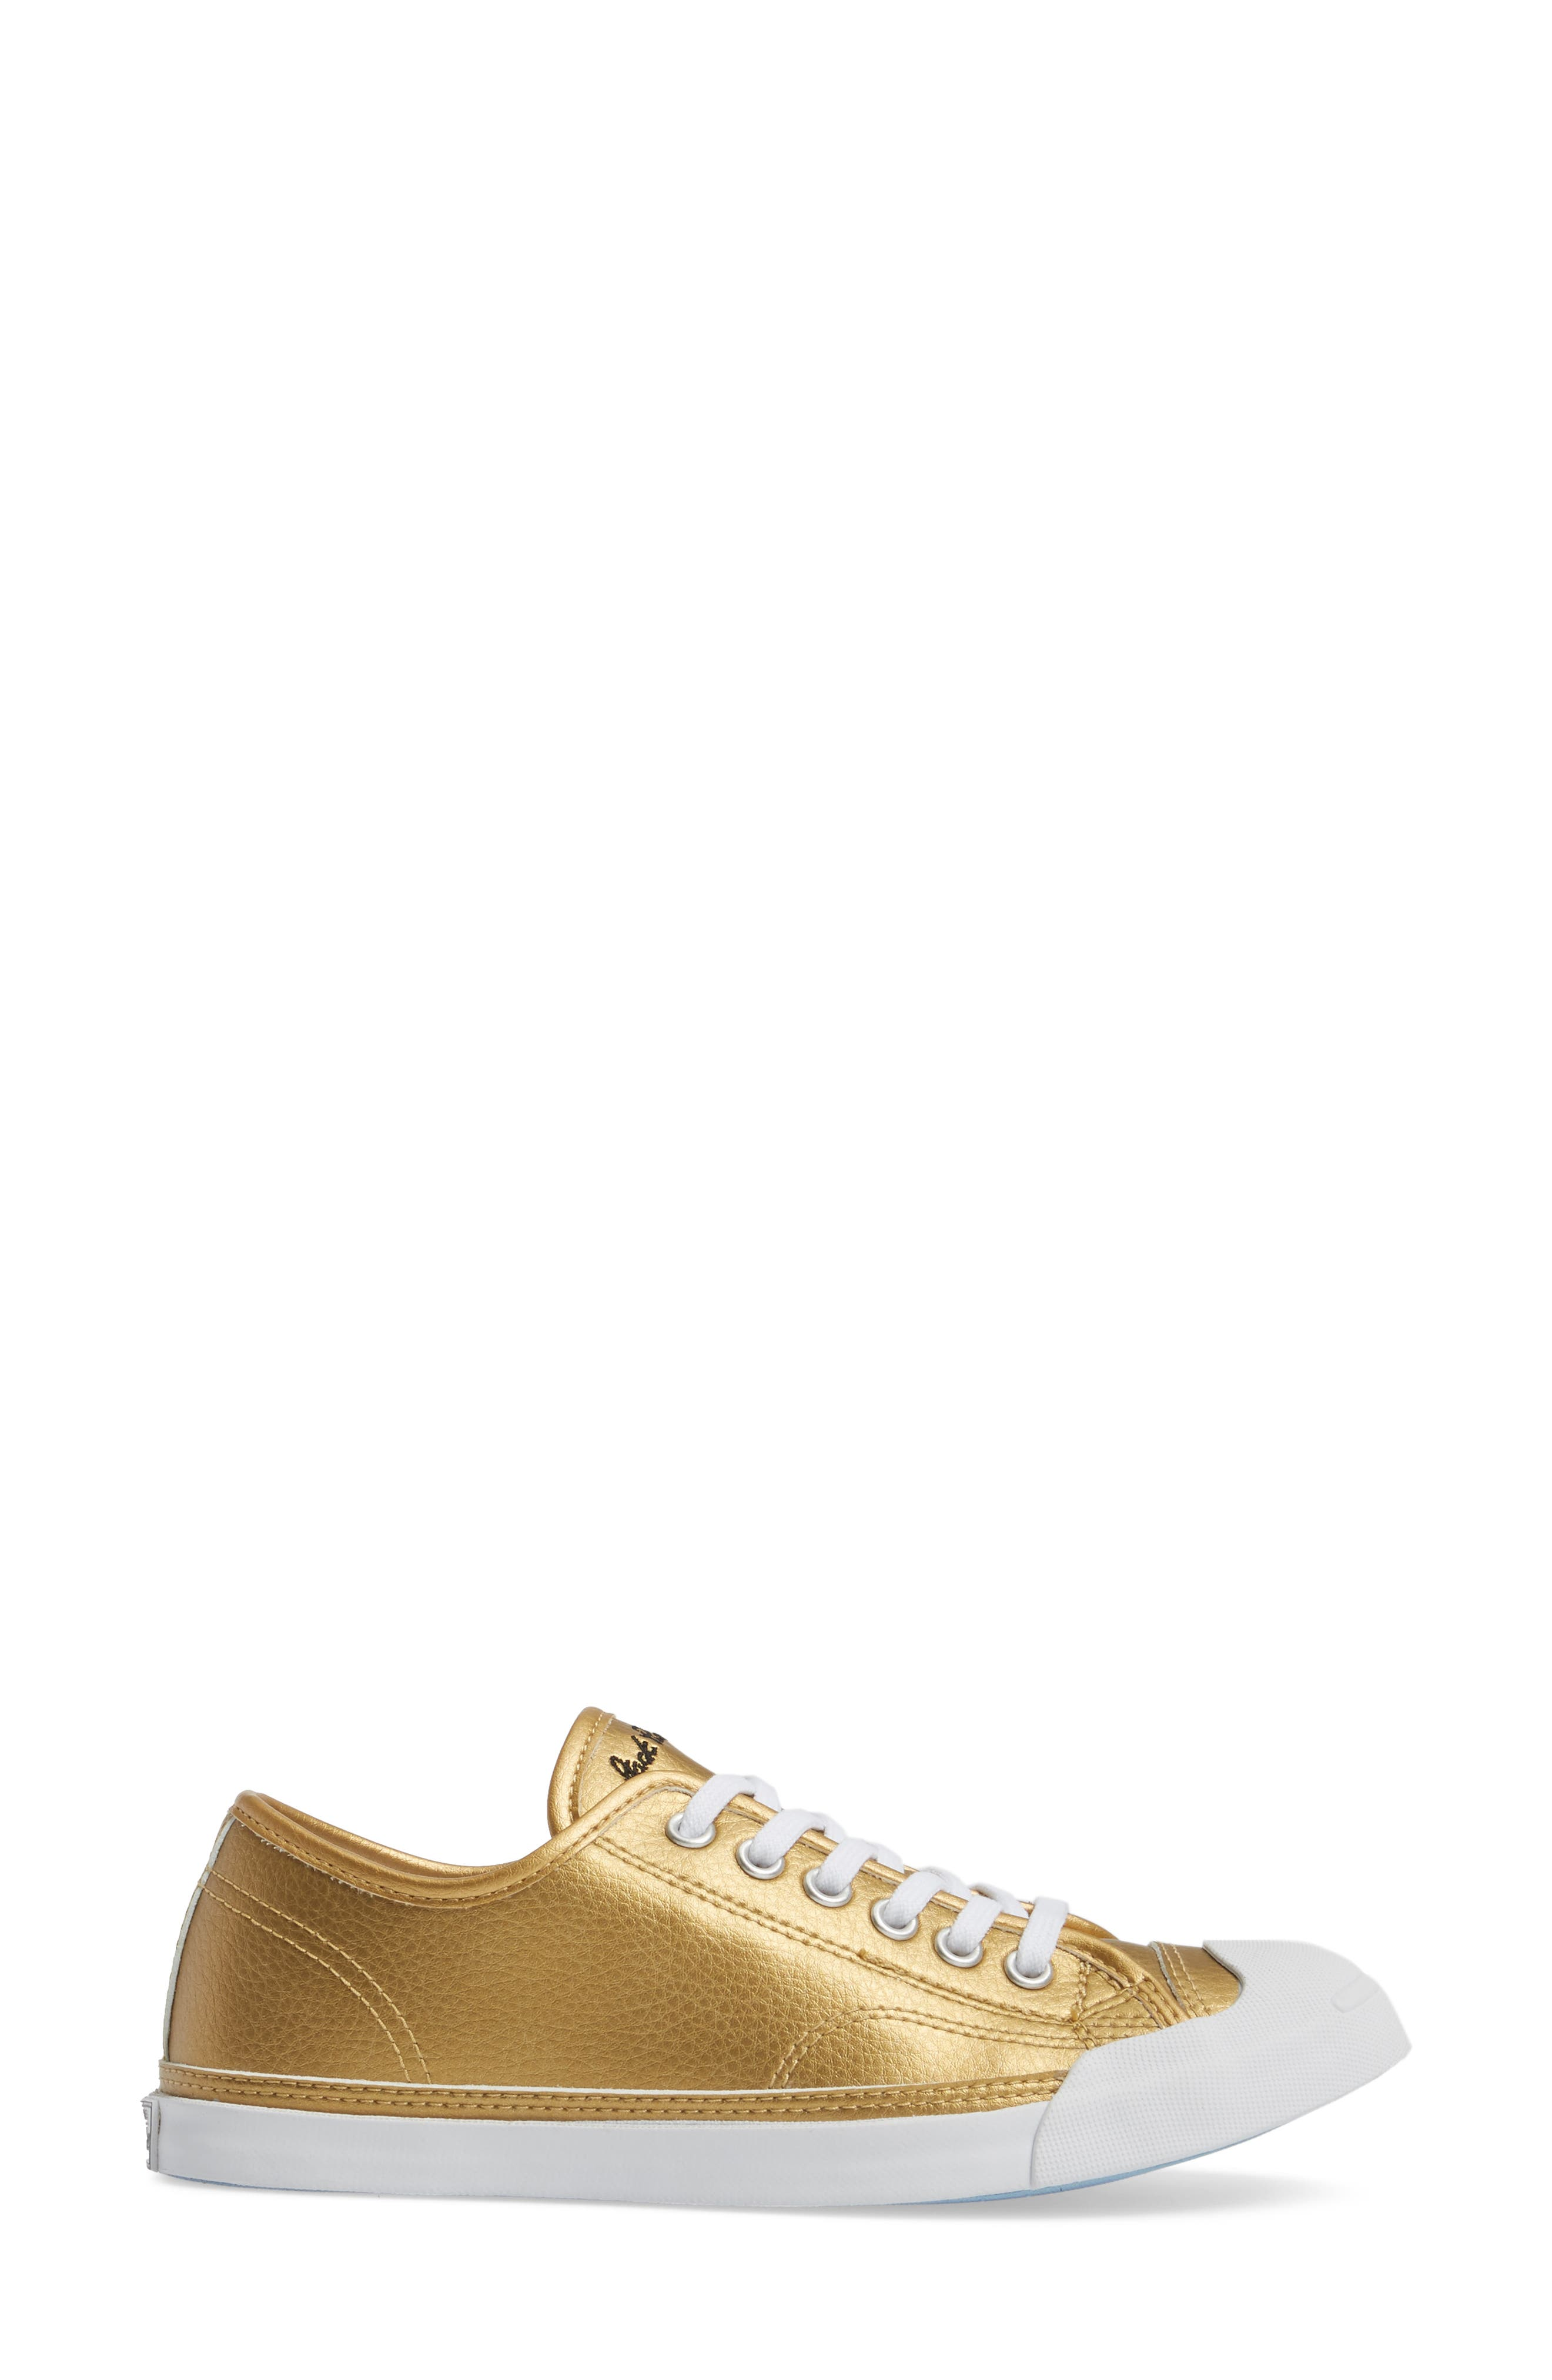 ,                             Jack Purcell Low Top Sneaker,                             Alternate thumbnail 51, color,                             710